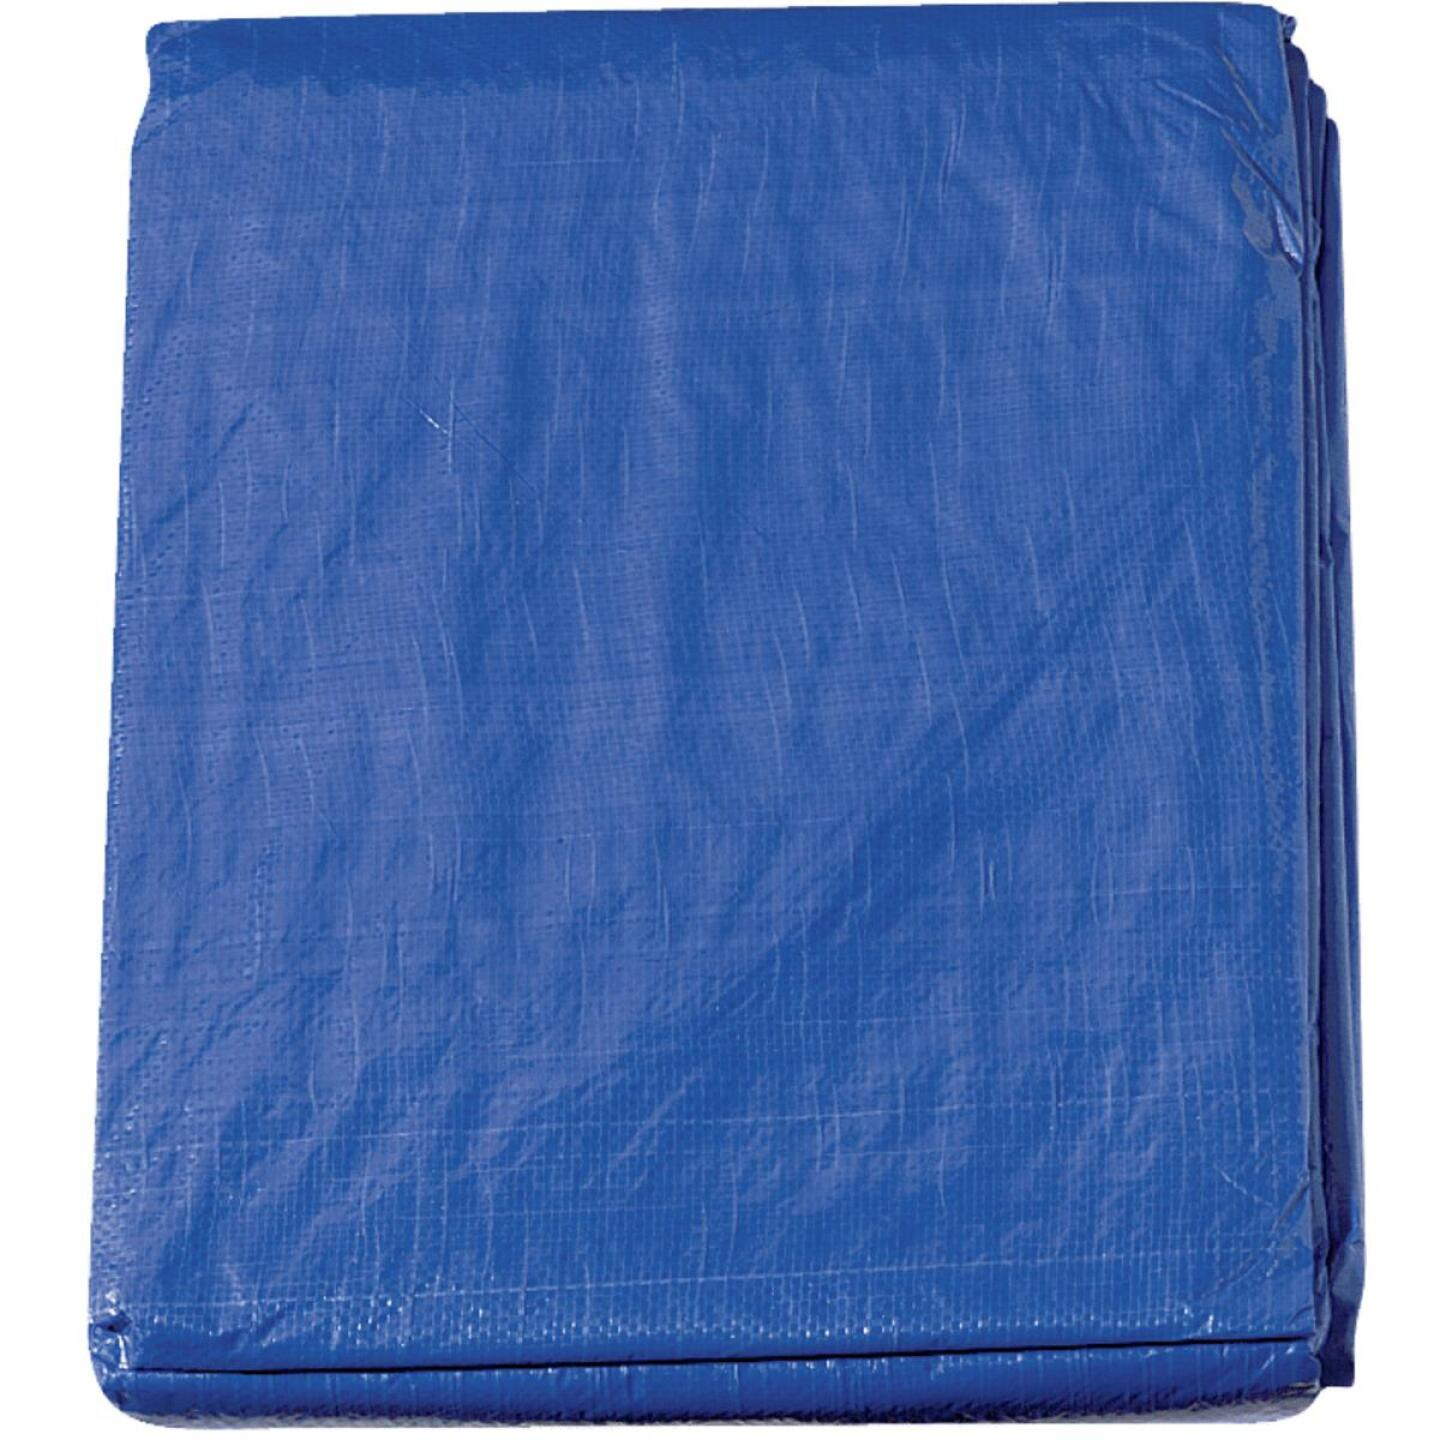 Do it 16 Ft x 20 Ft Blue Medium Duty Tarp Image 2